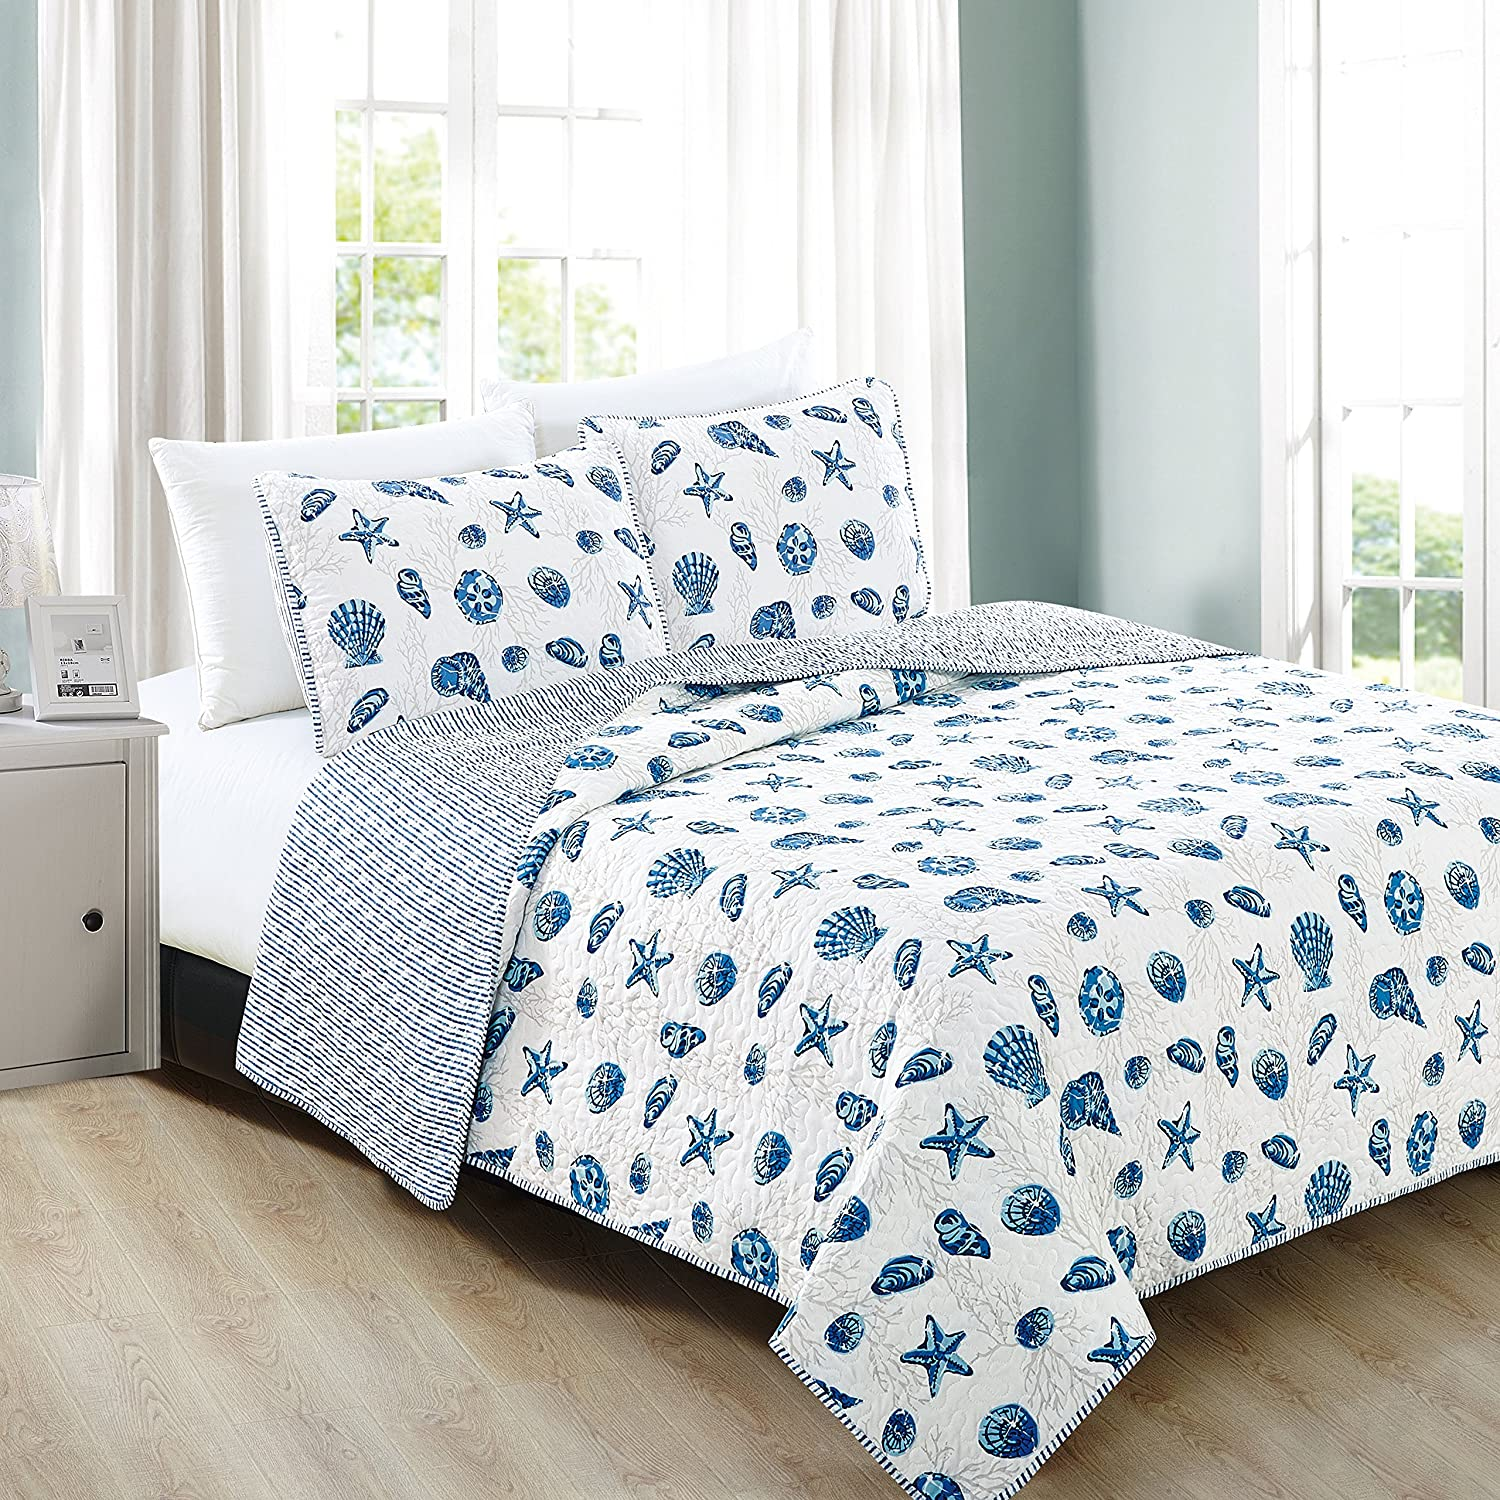 Home Fashion Designs 2-Piece Coastal Beach Theme Quilt Set with Shams. Soft All-Season Luxury Microfiber Reversible Bedspread and Coverlet. Bali Collection Brand. (Twin, Blue)